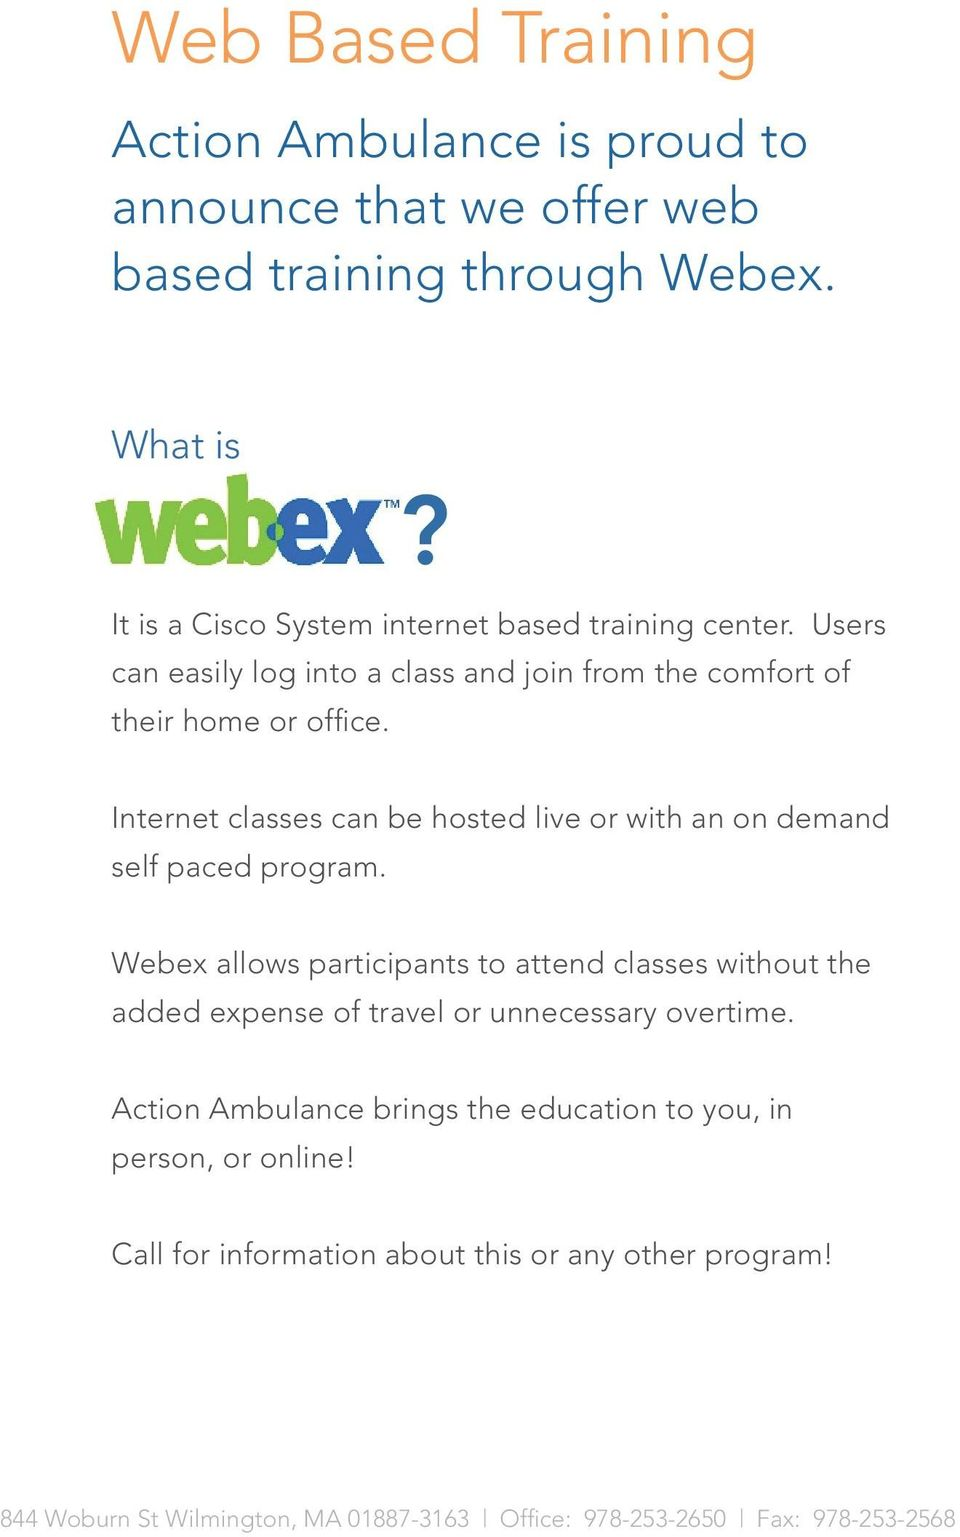 Internet classes can be hosted live or with an on demand self paced program.